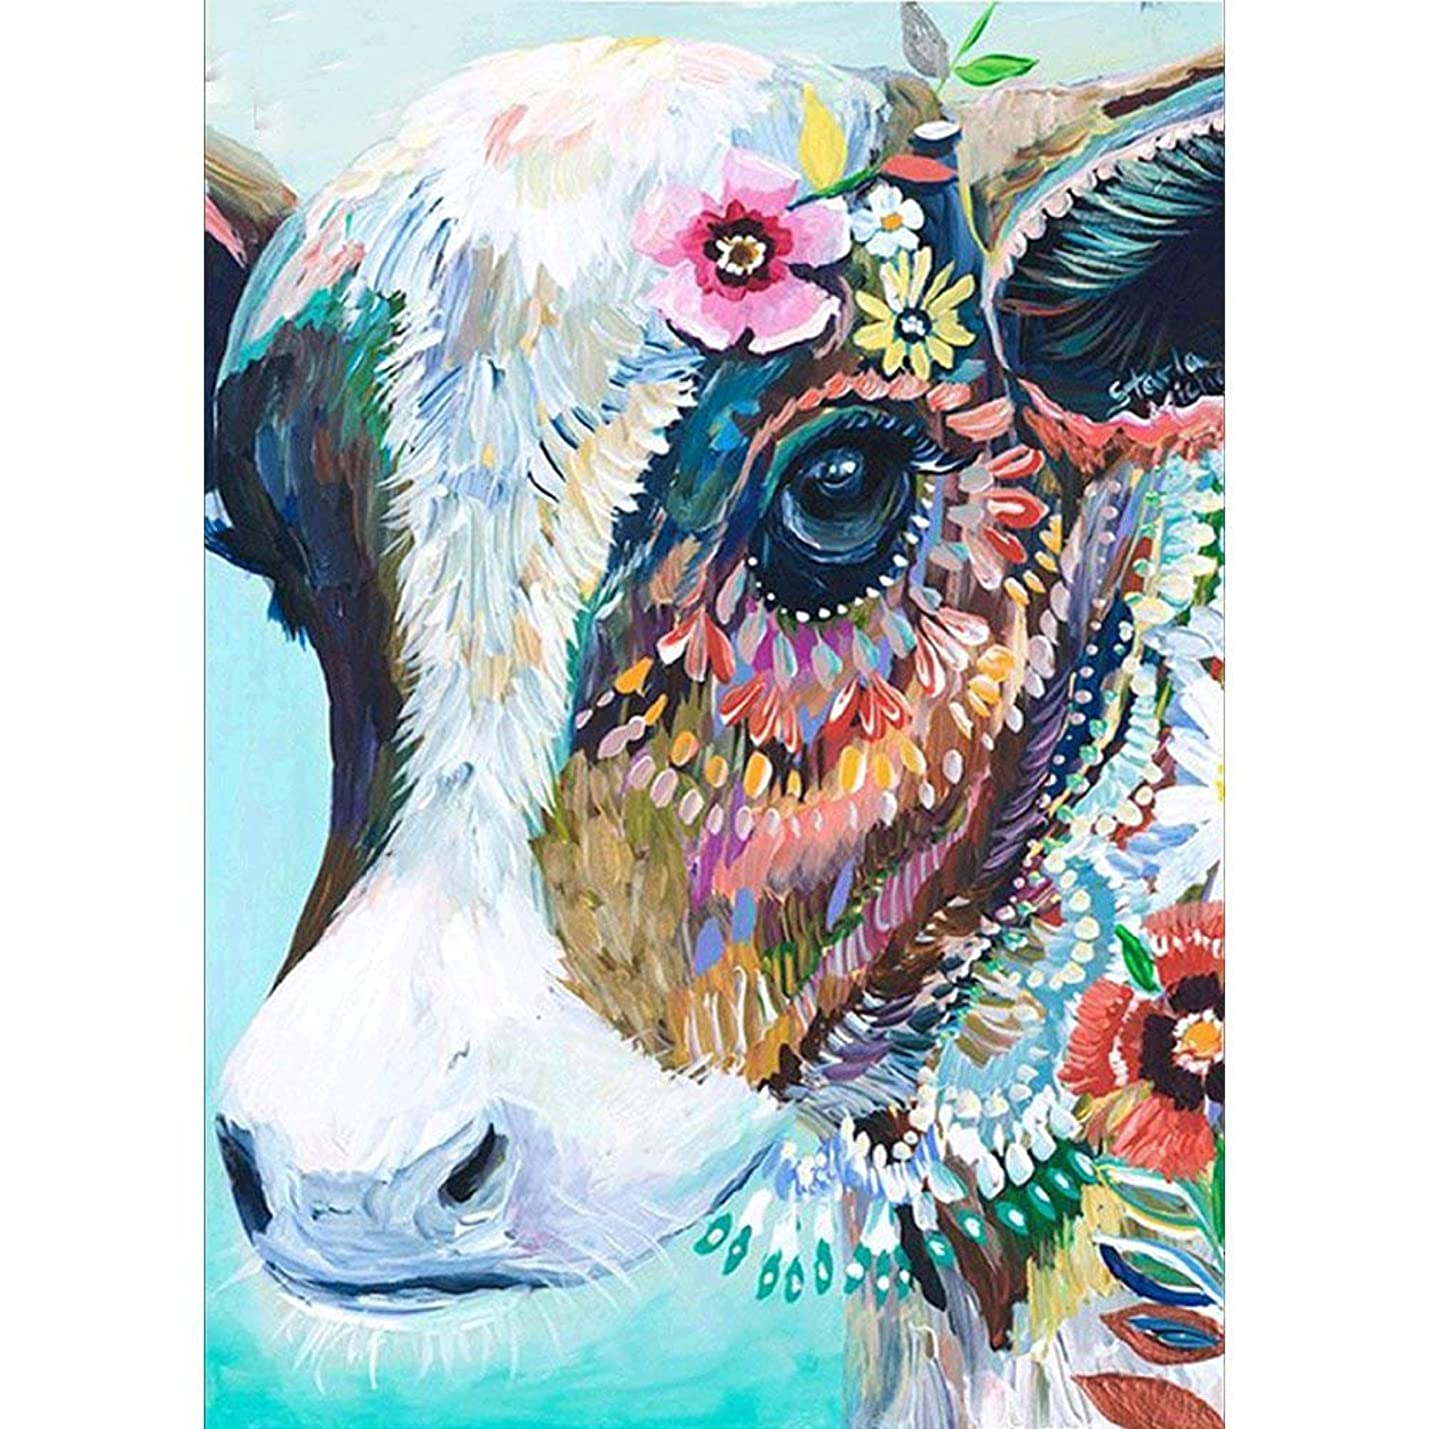 DIY 5D Diamond Painting by Number Kits, Diamond Embroidery Paintings Pictures Arts Craft for Home Wall Decor, Full Drill, 12x16in Colorful Cow mneuxzxzjsvir583